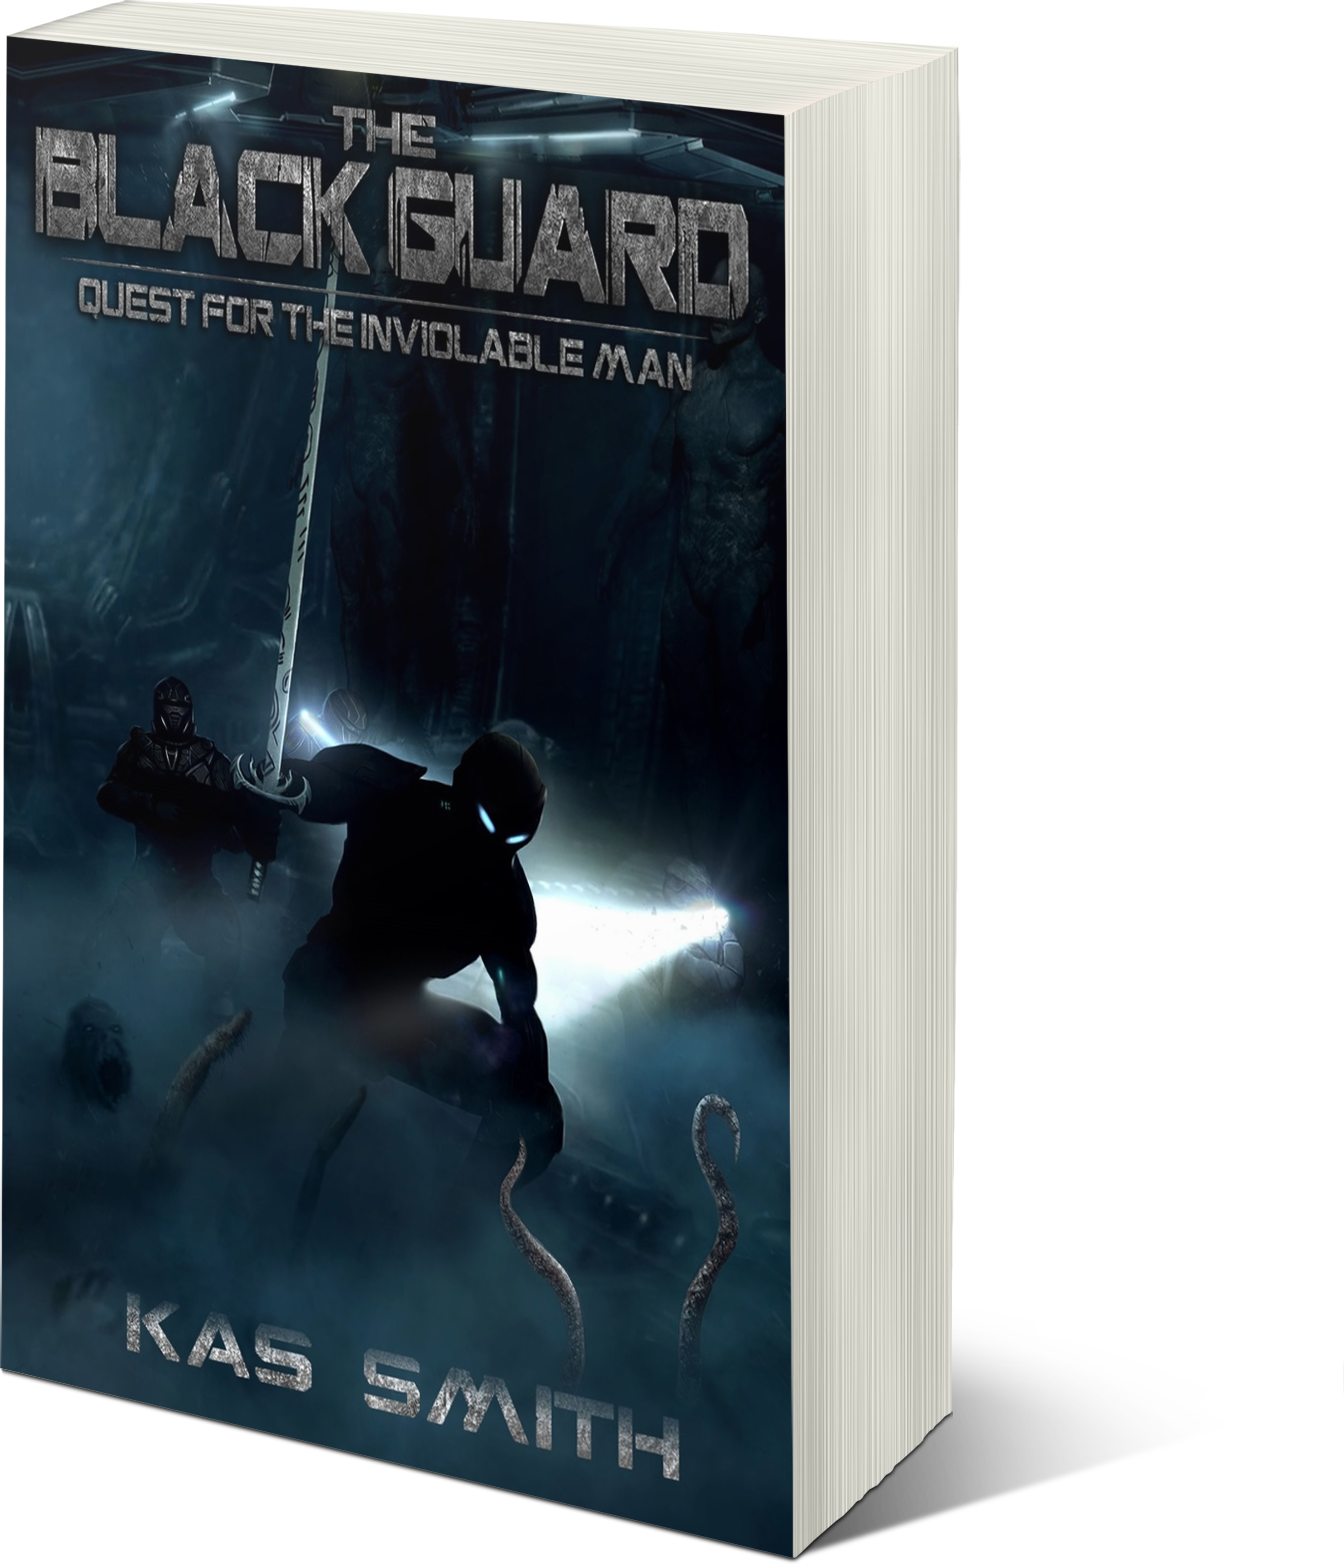 THE BLACK GUARD – QUEST FOR THE INVIOLABLE MAN